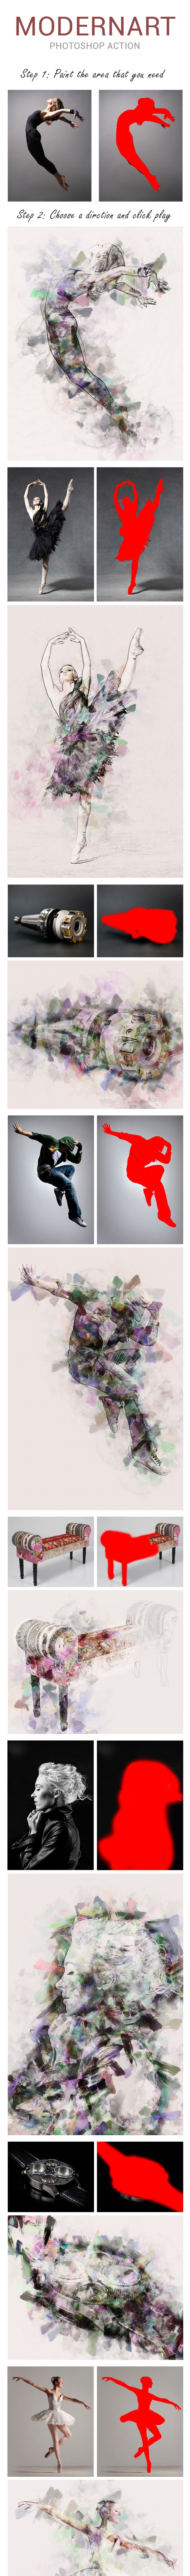 ModernArt-Action - Photo Effects Actions